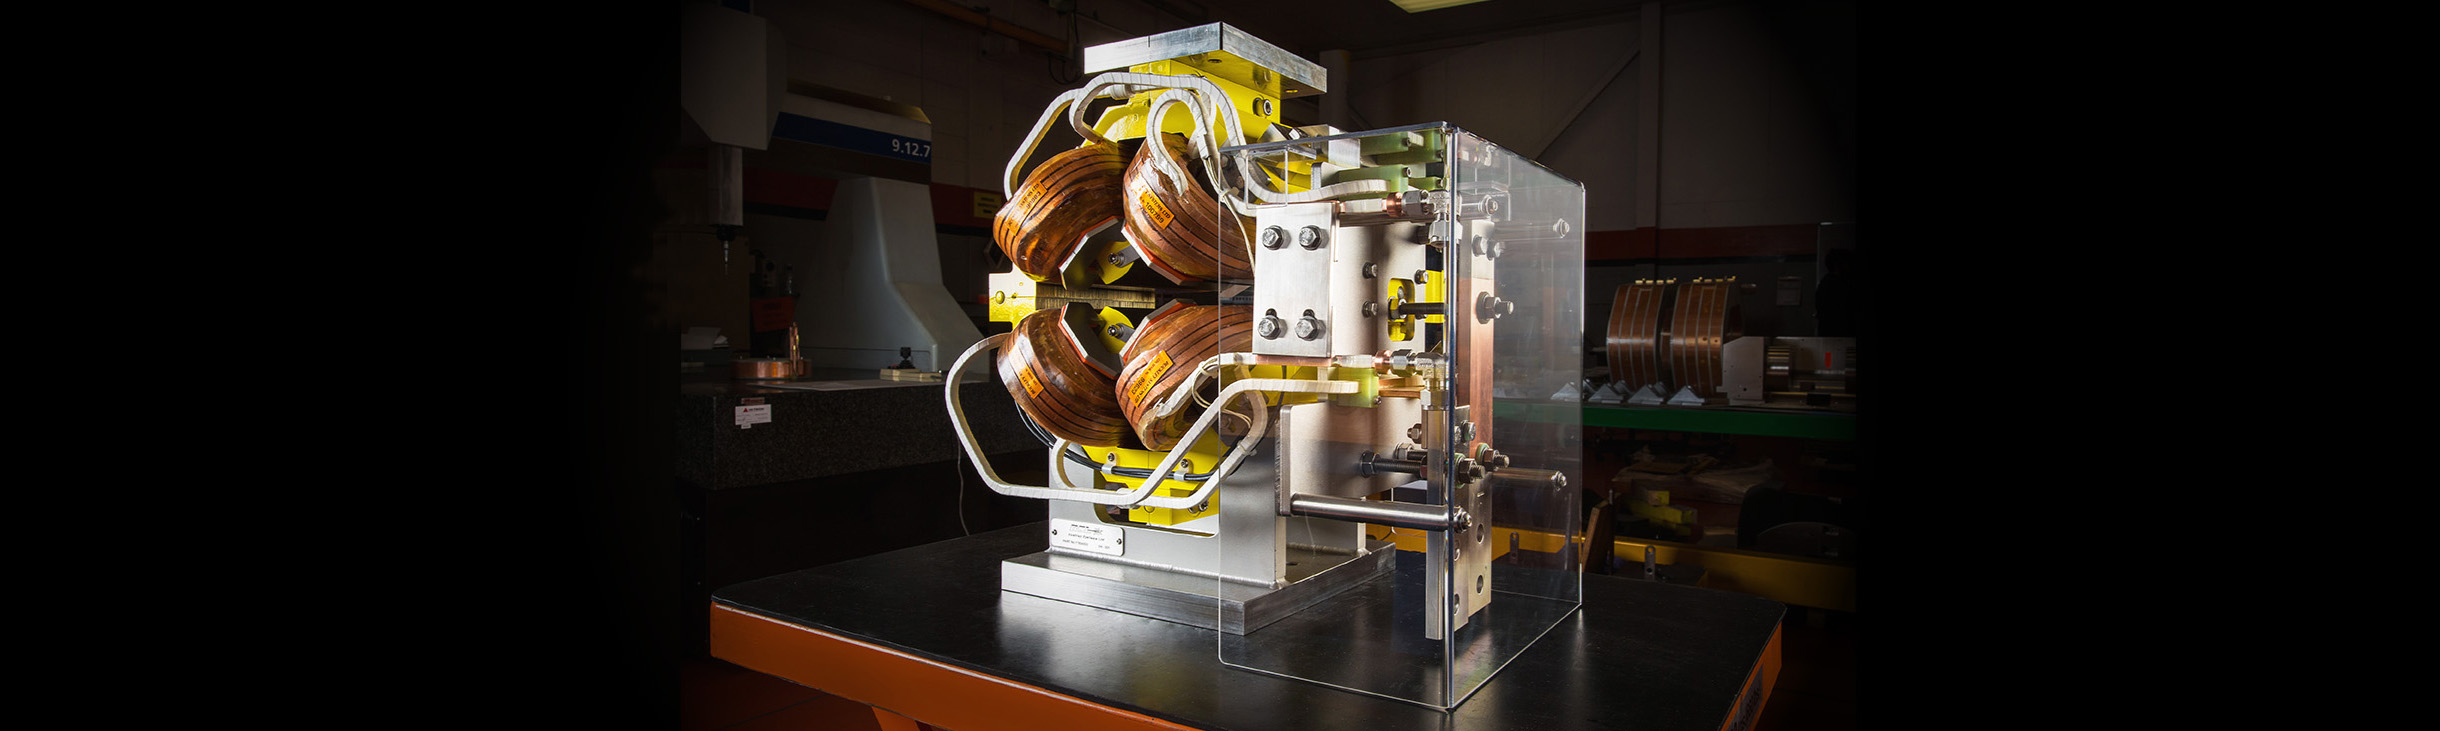 Beam Transport Quadrupole for Hadron Therapy